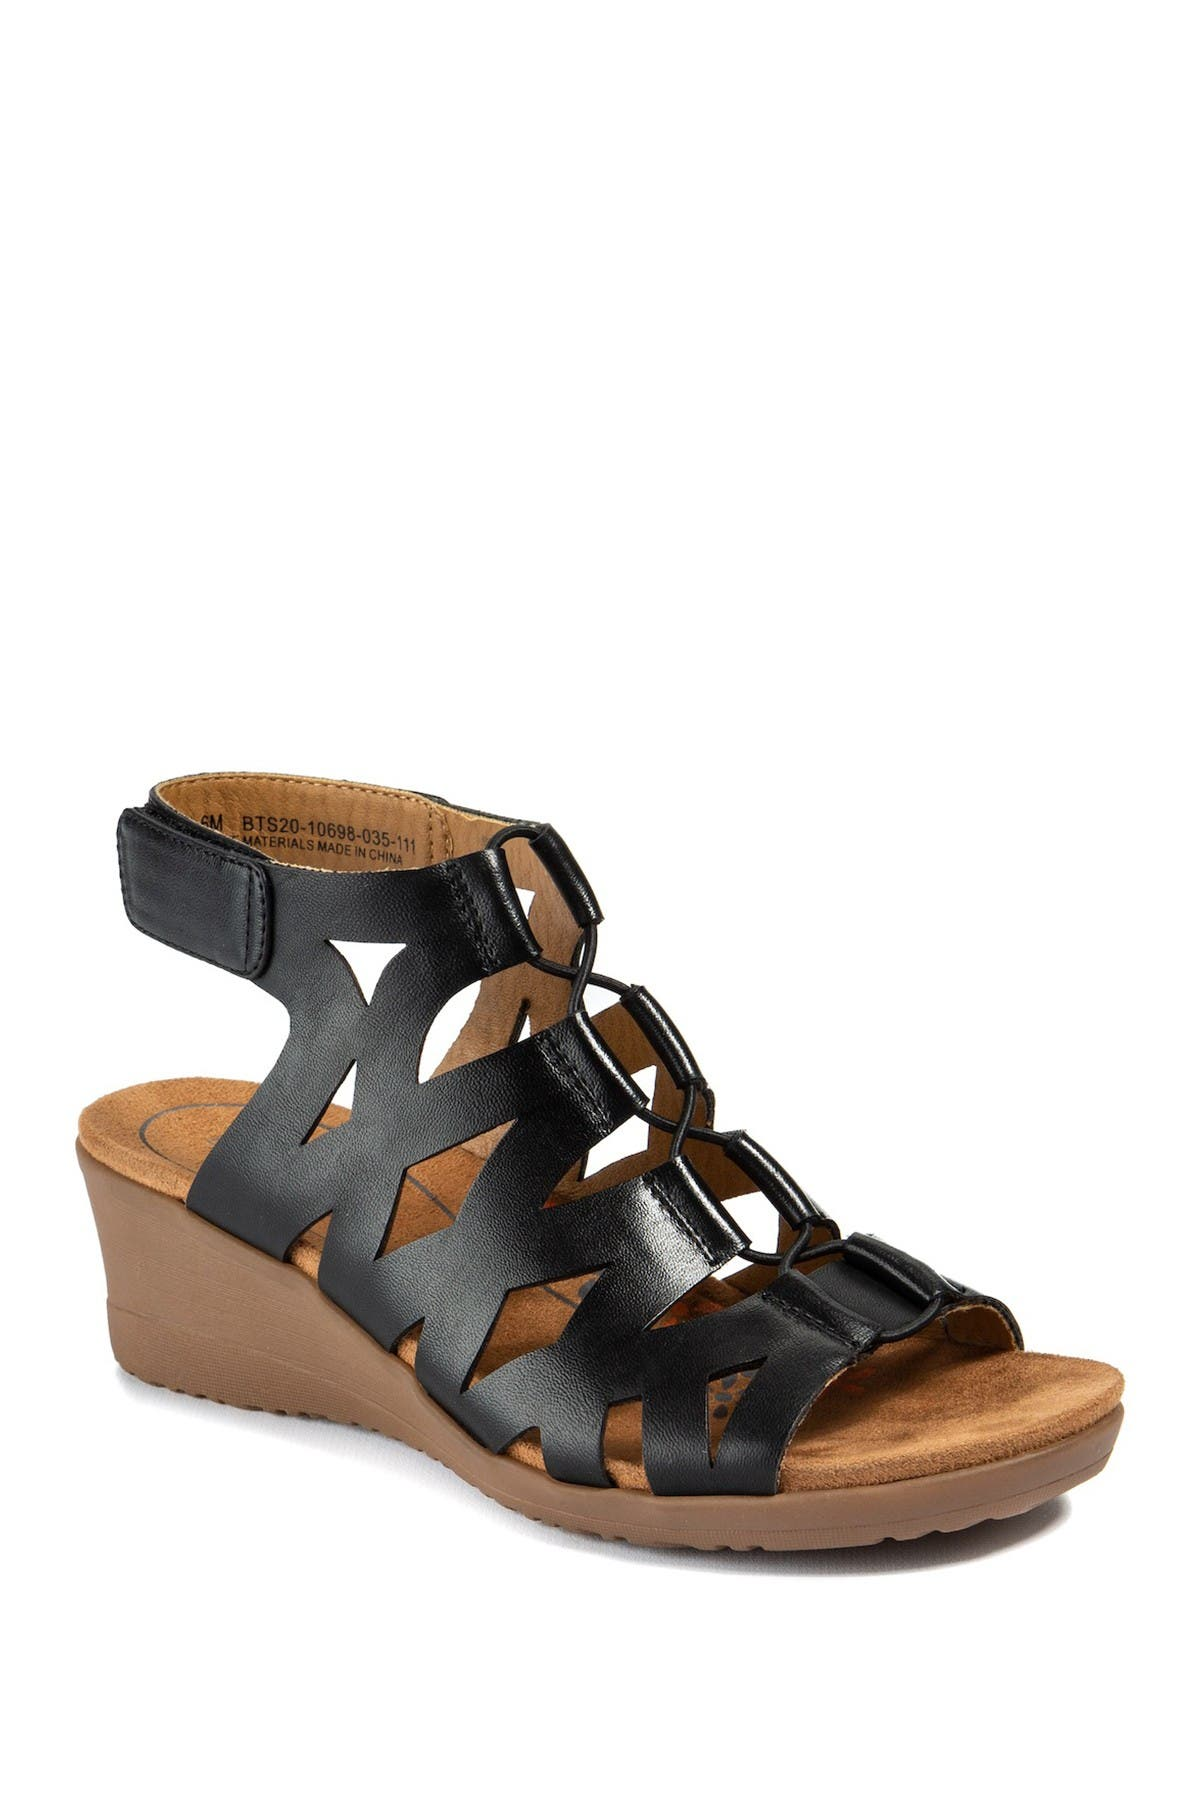 Image of BareTraps Tiney Wedge Sandal